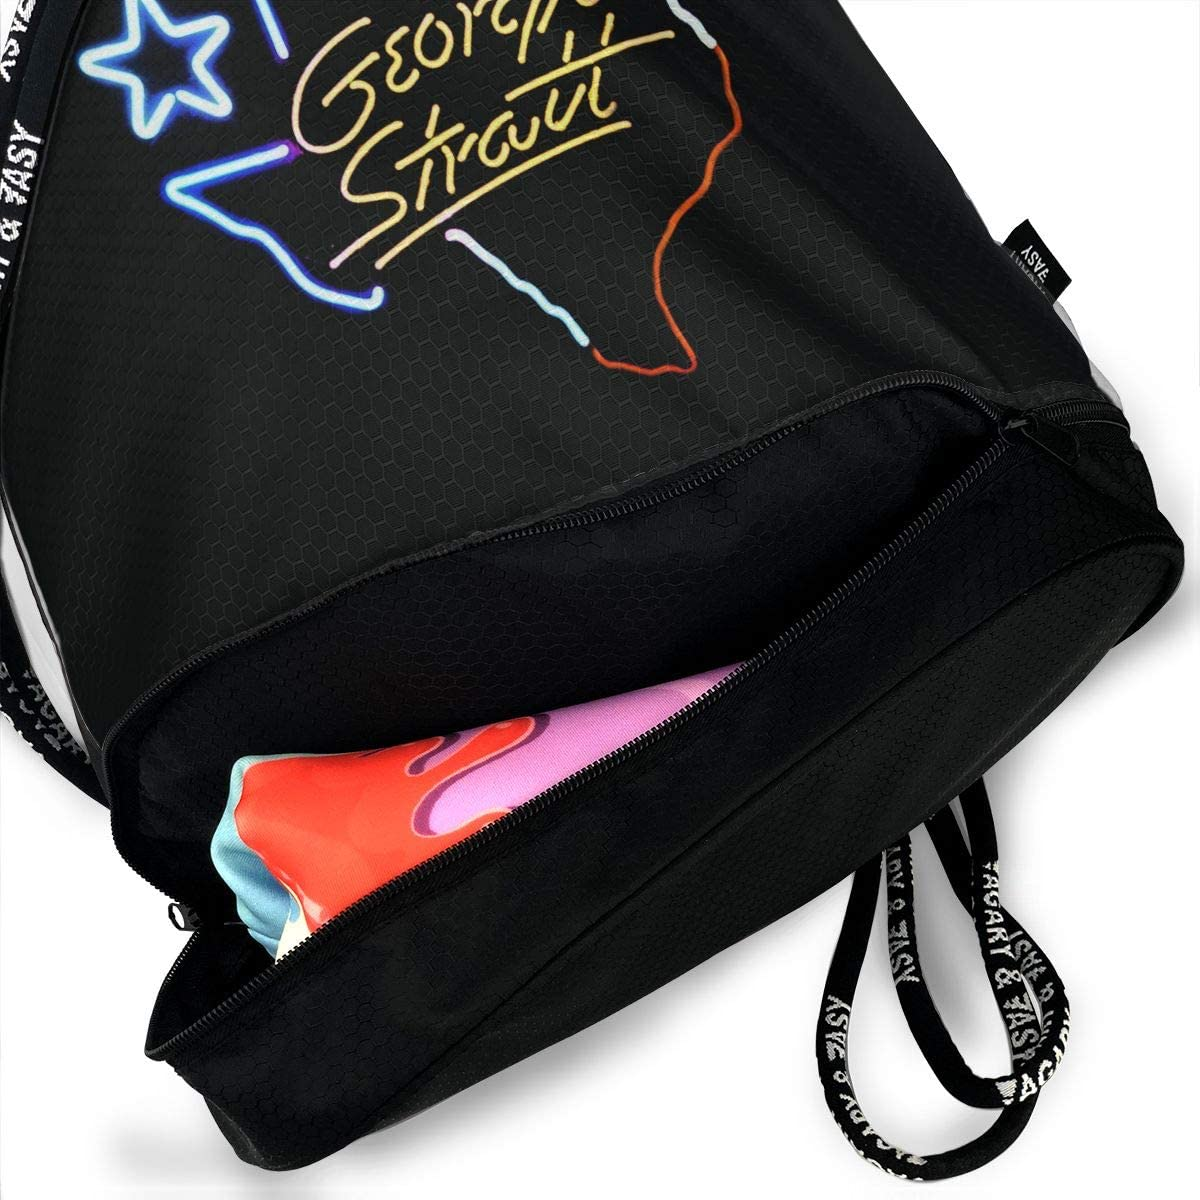 UUYYTZBHWB Sport Unisex Bundle Drawstring Backpack George Strait Travel Durable Gym Waterproof Multifunction Daypack